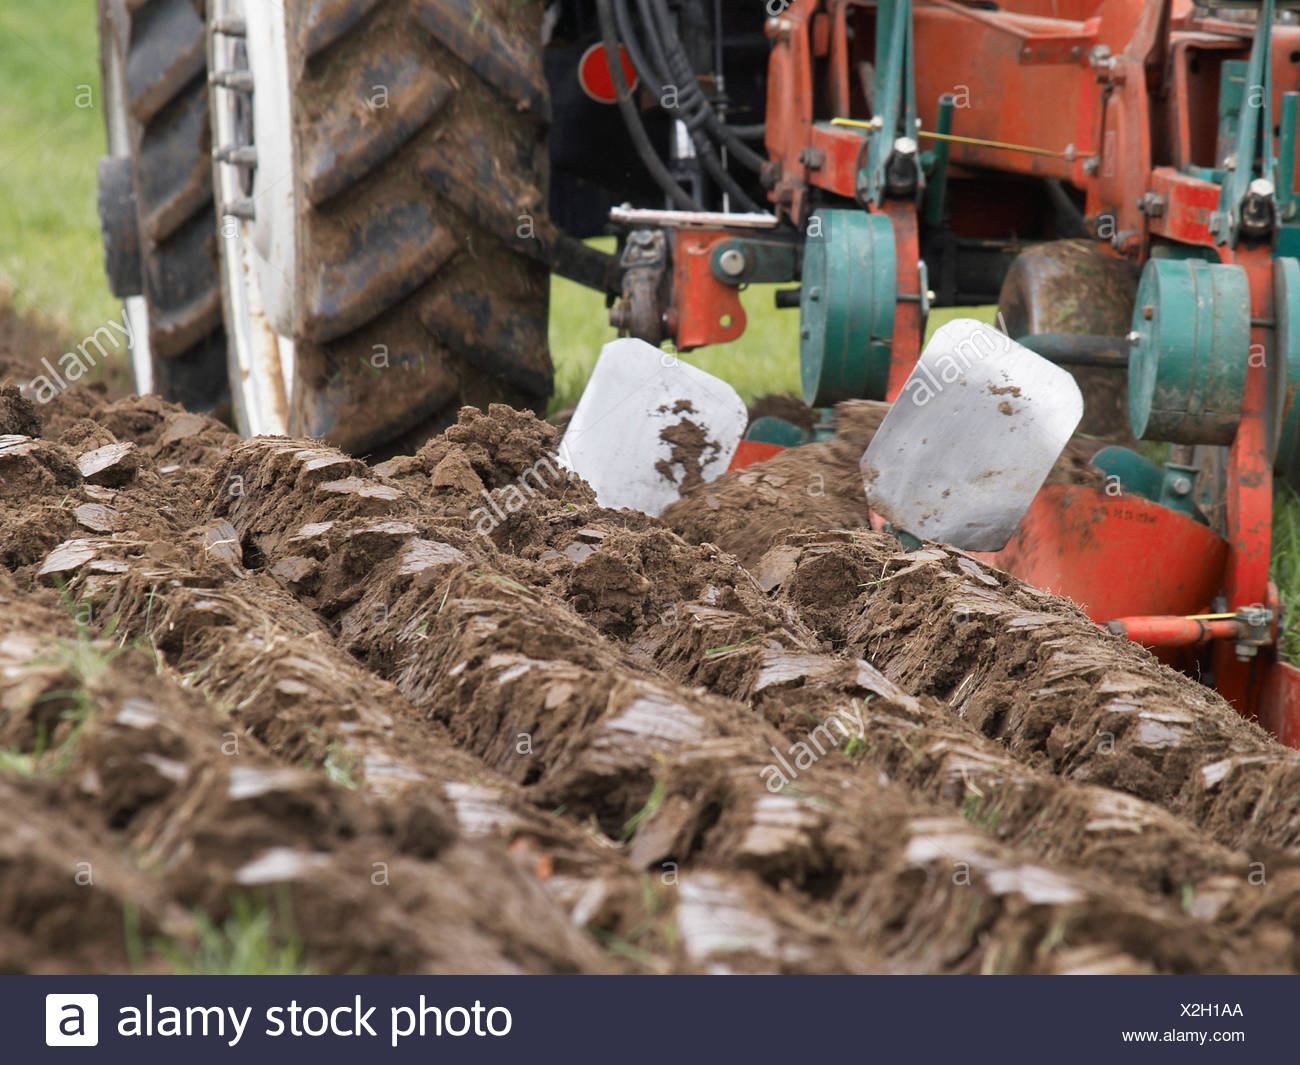 field tractor plough furrow cultivation tillage agriculture farming field farm - Stock Image